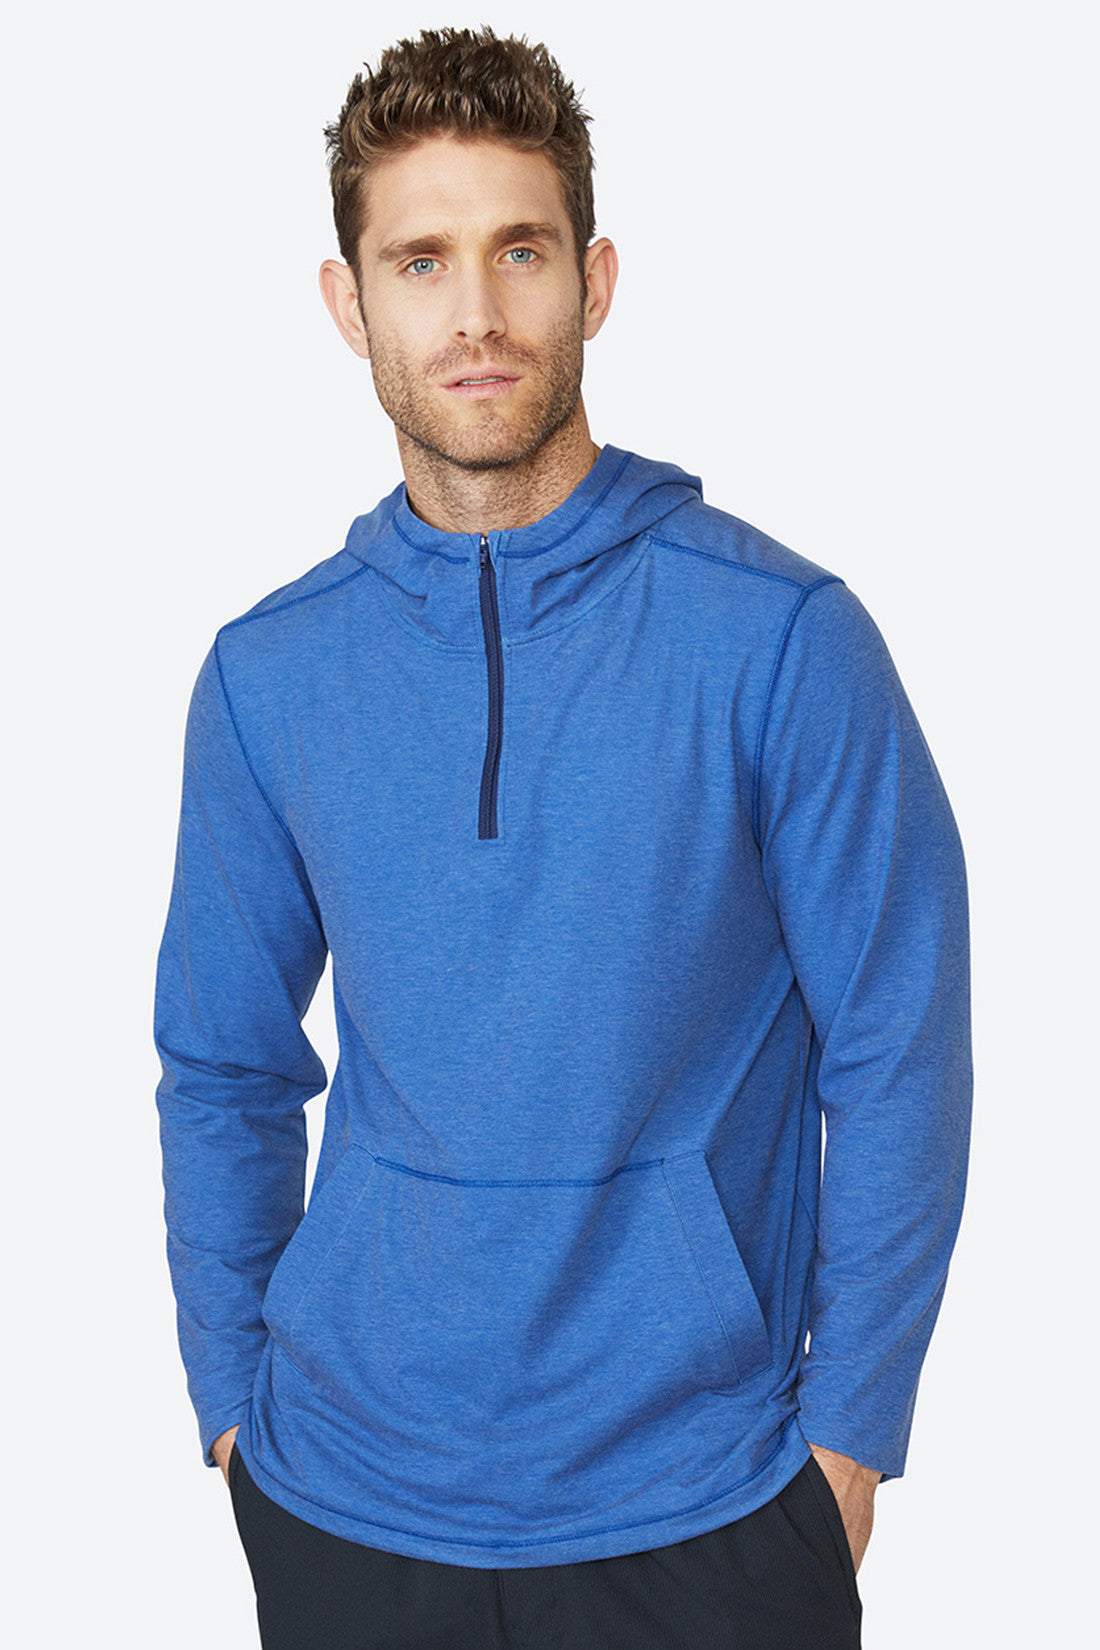 lightweight, sweat wicking, fast drying, performance, fitness, active, warm hoodie